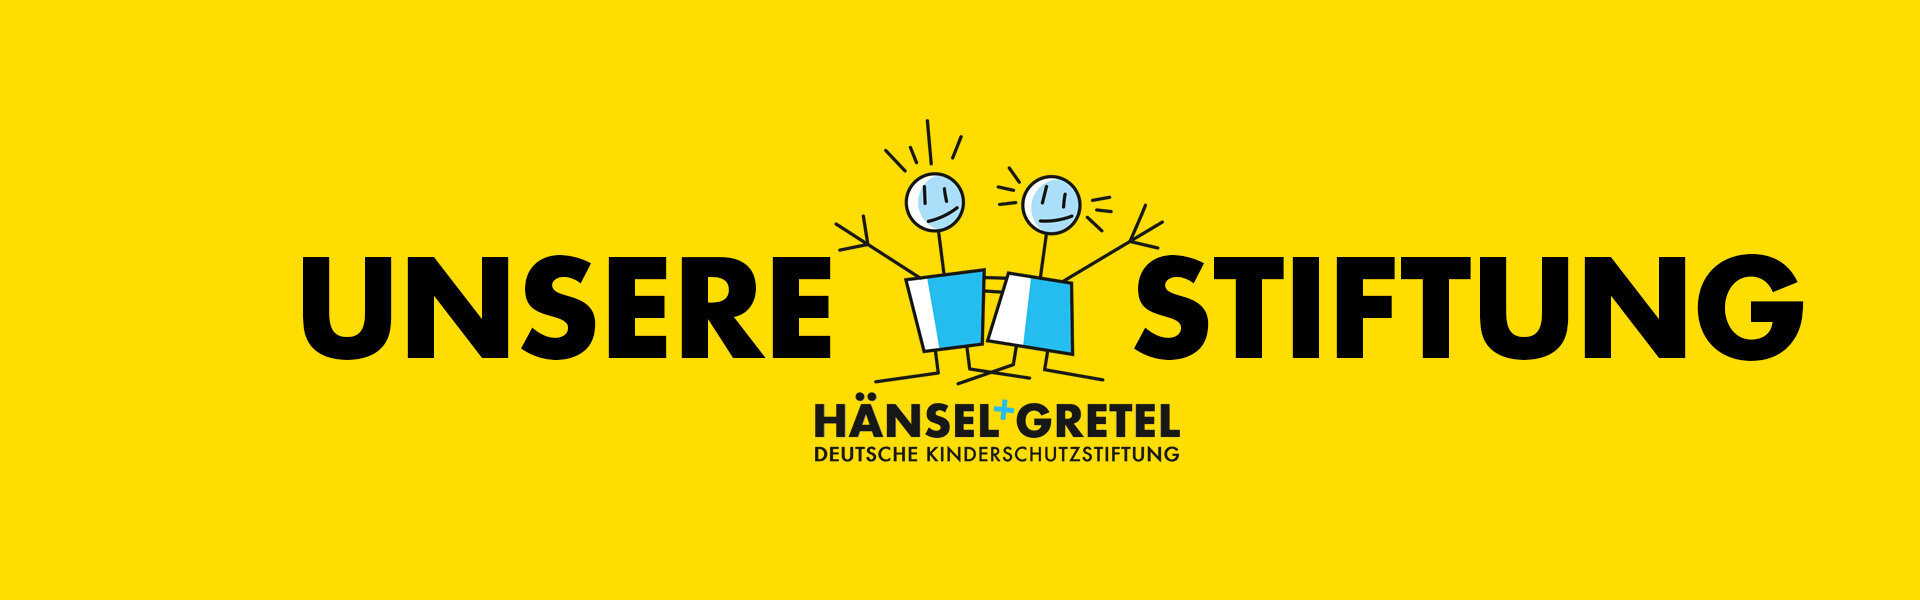 Unsere Stiftung